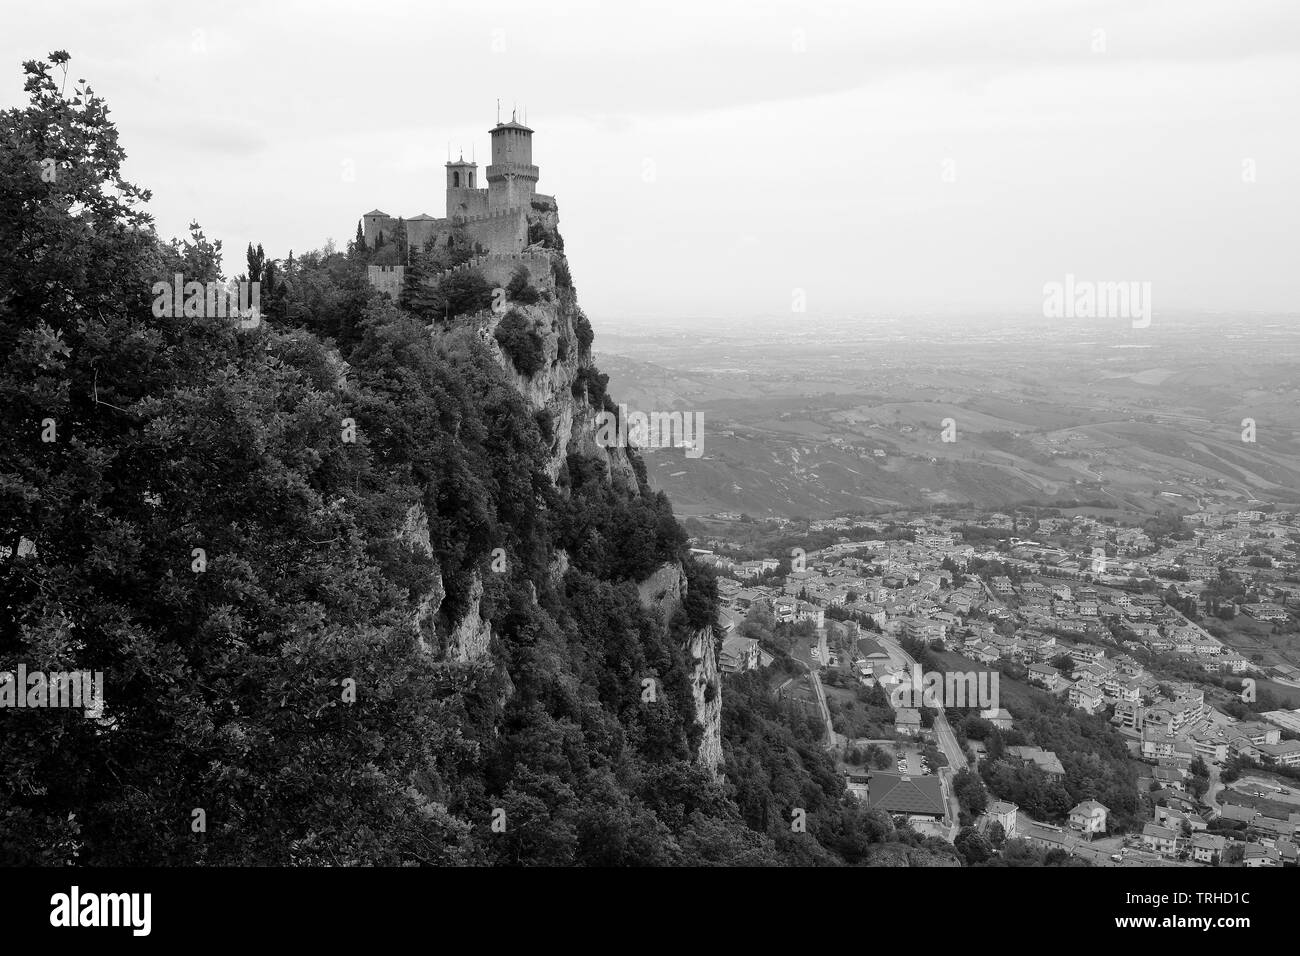 View of the castle and the surrounding area of San Marino Citta. - Stock Image